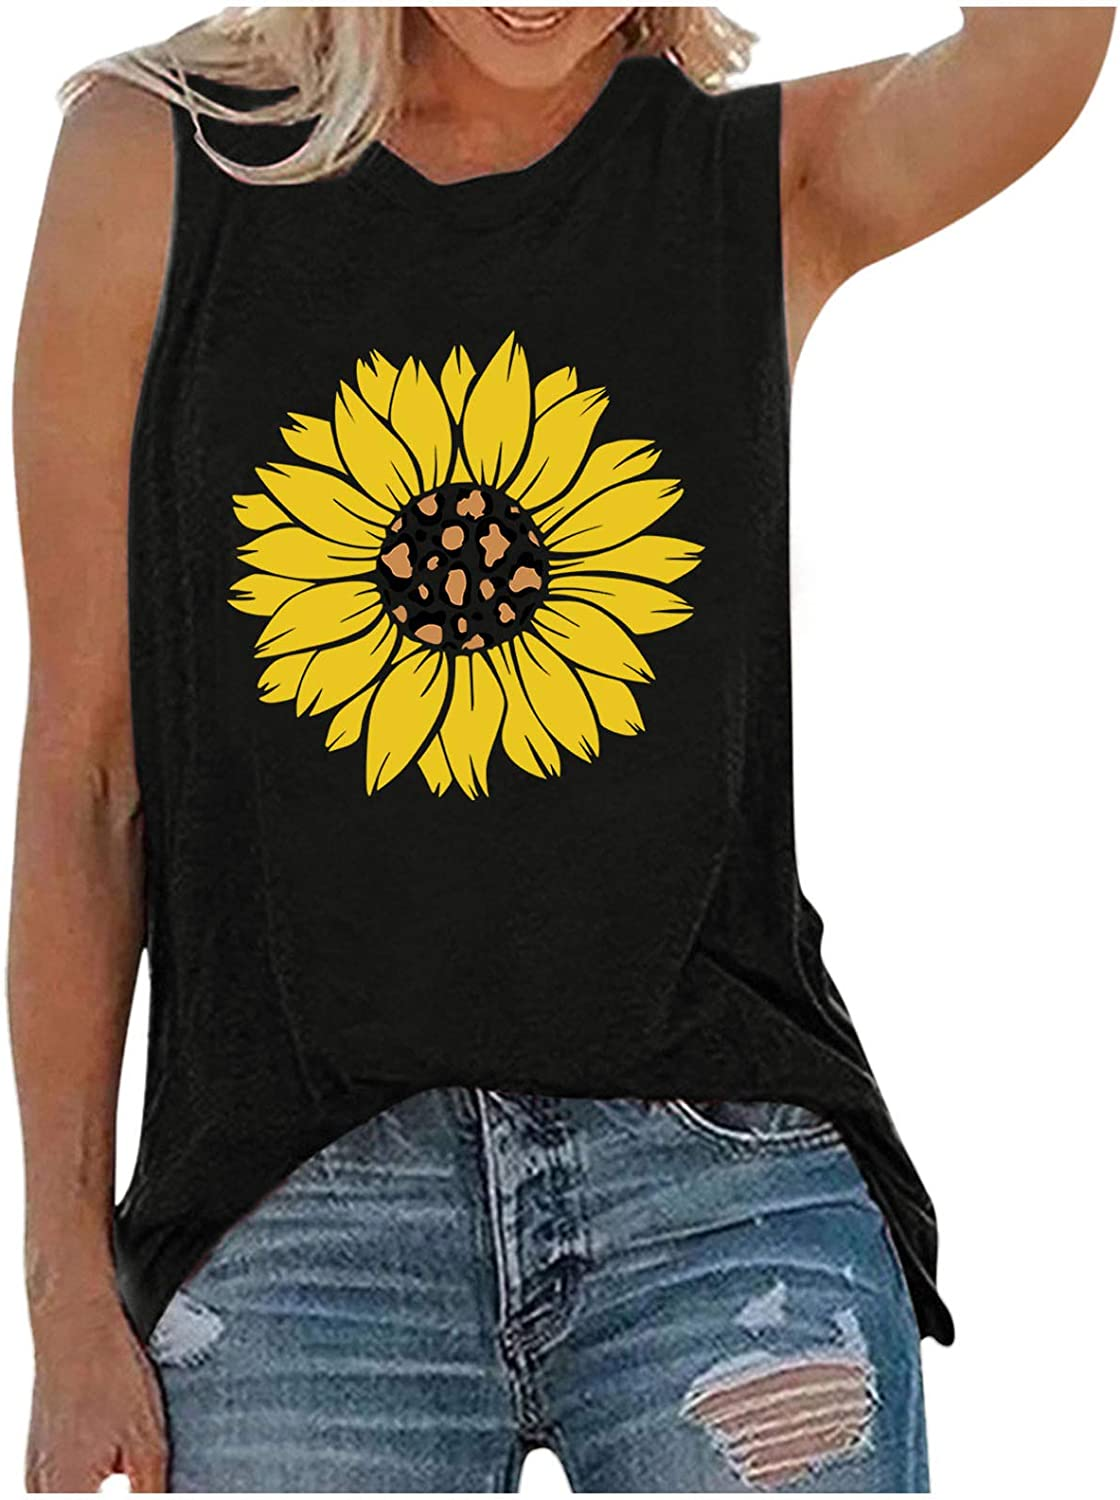 Womens Tank Tops Workout,Womens Crop Top Graphic Printed Shirts Sleeveless Fashion Blouse Loose Soft Comfortable Tee